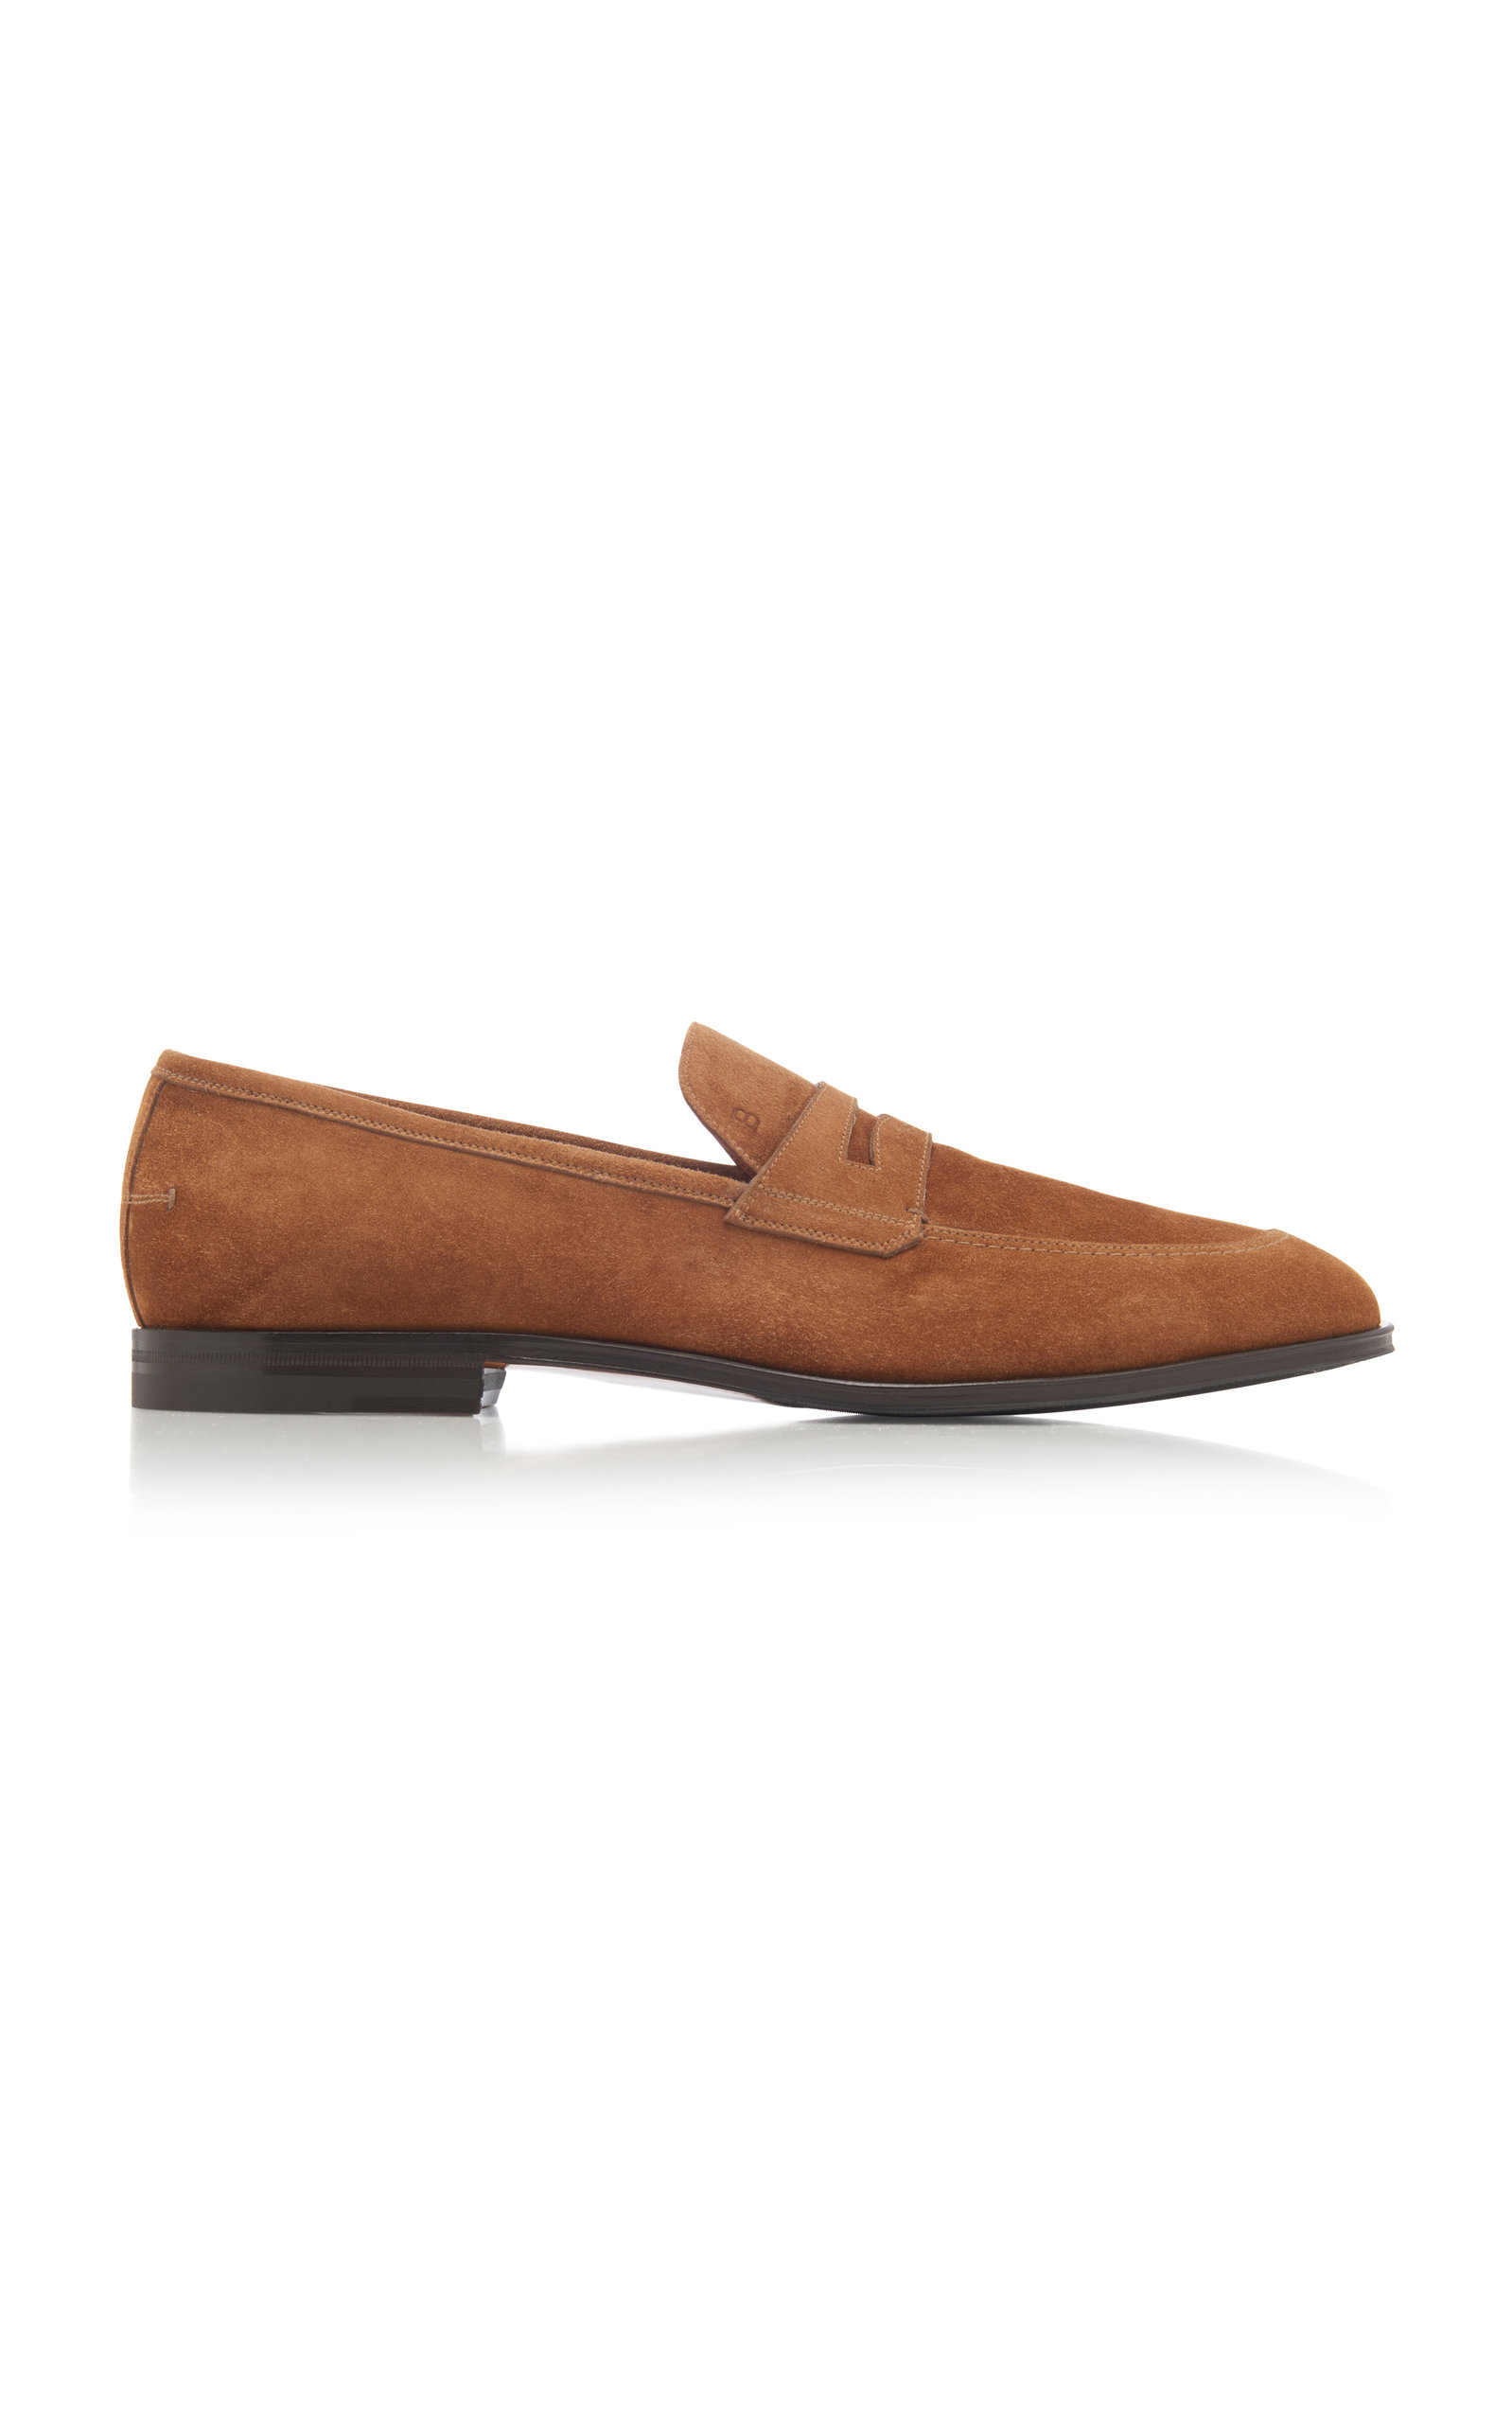 f5db8f20a2d BallyWebb Suede Loafers. CLOSE. Loading